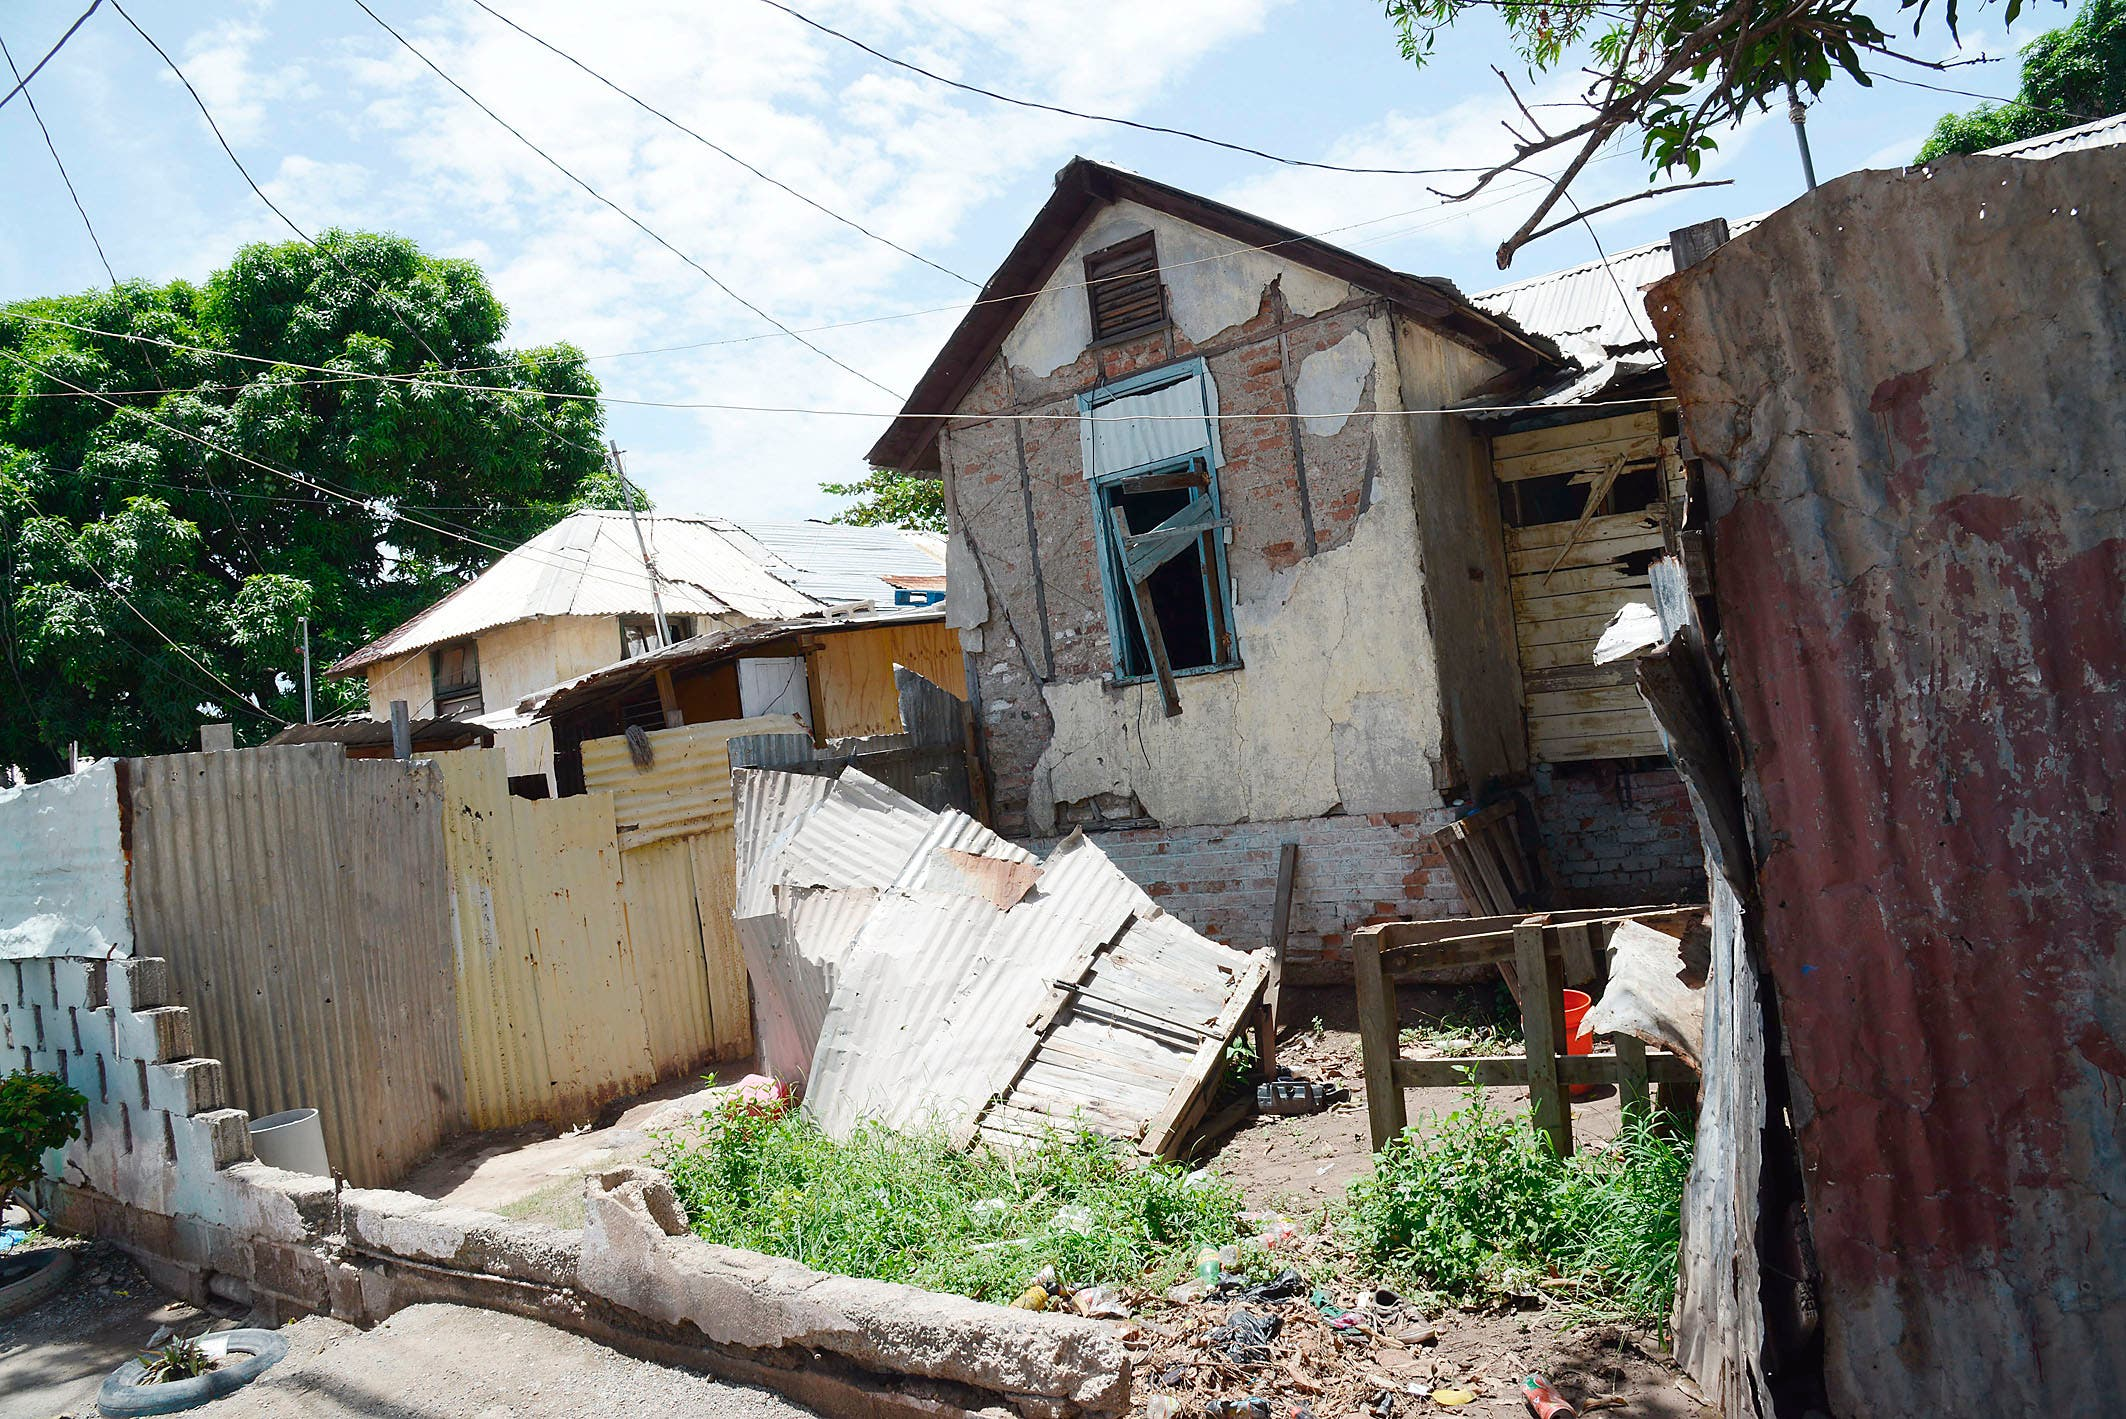 South St Andrew residents want better infrastructure